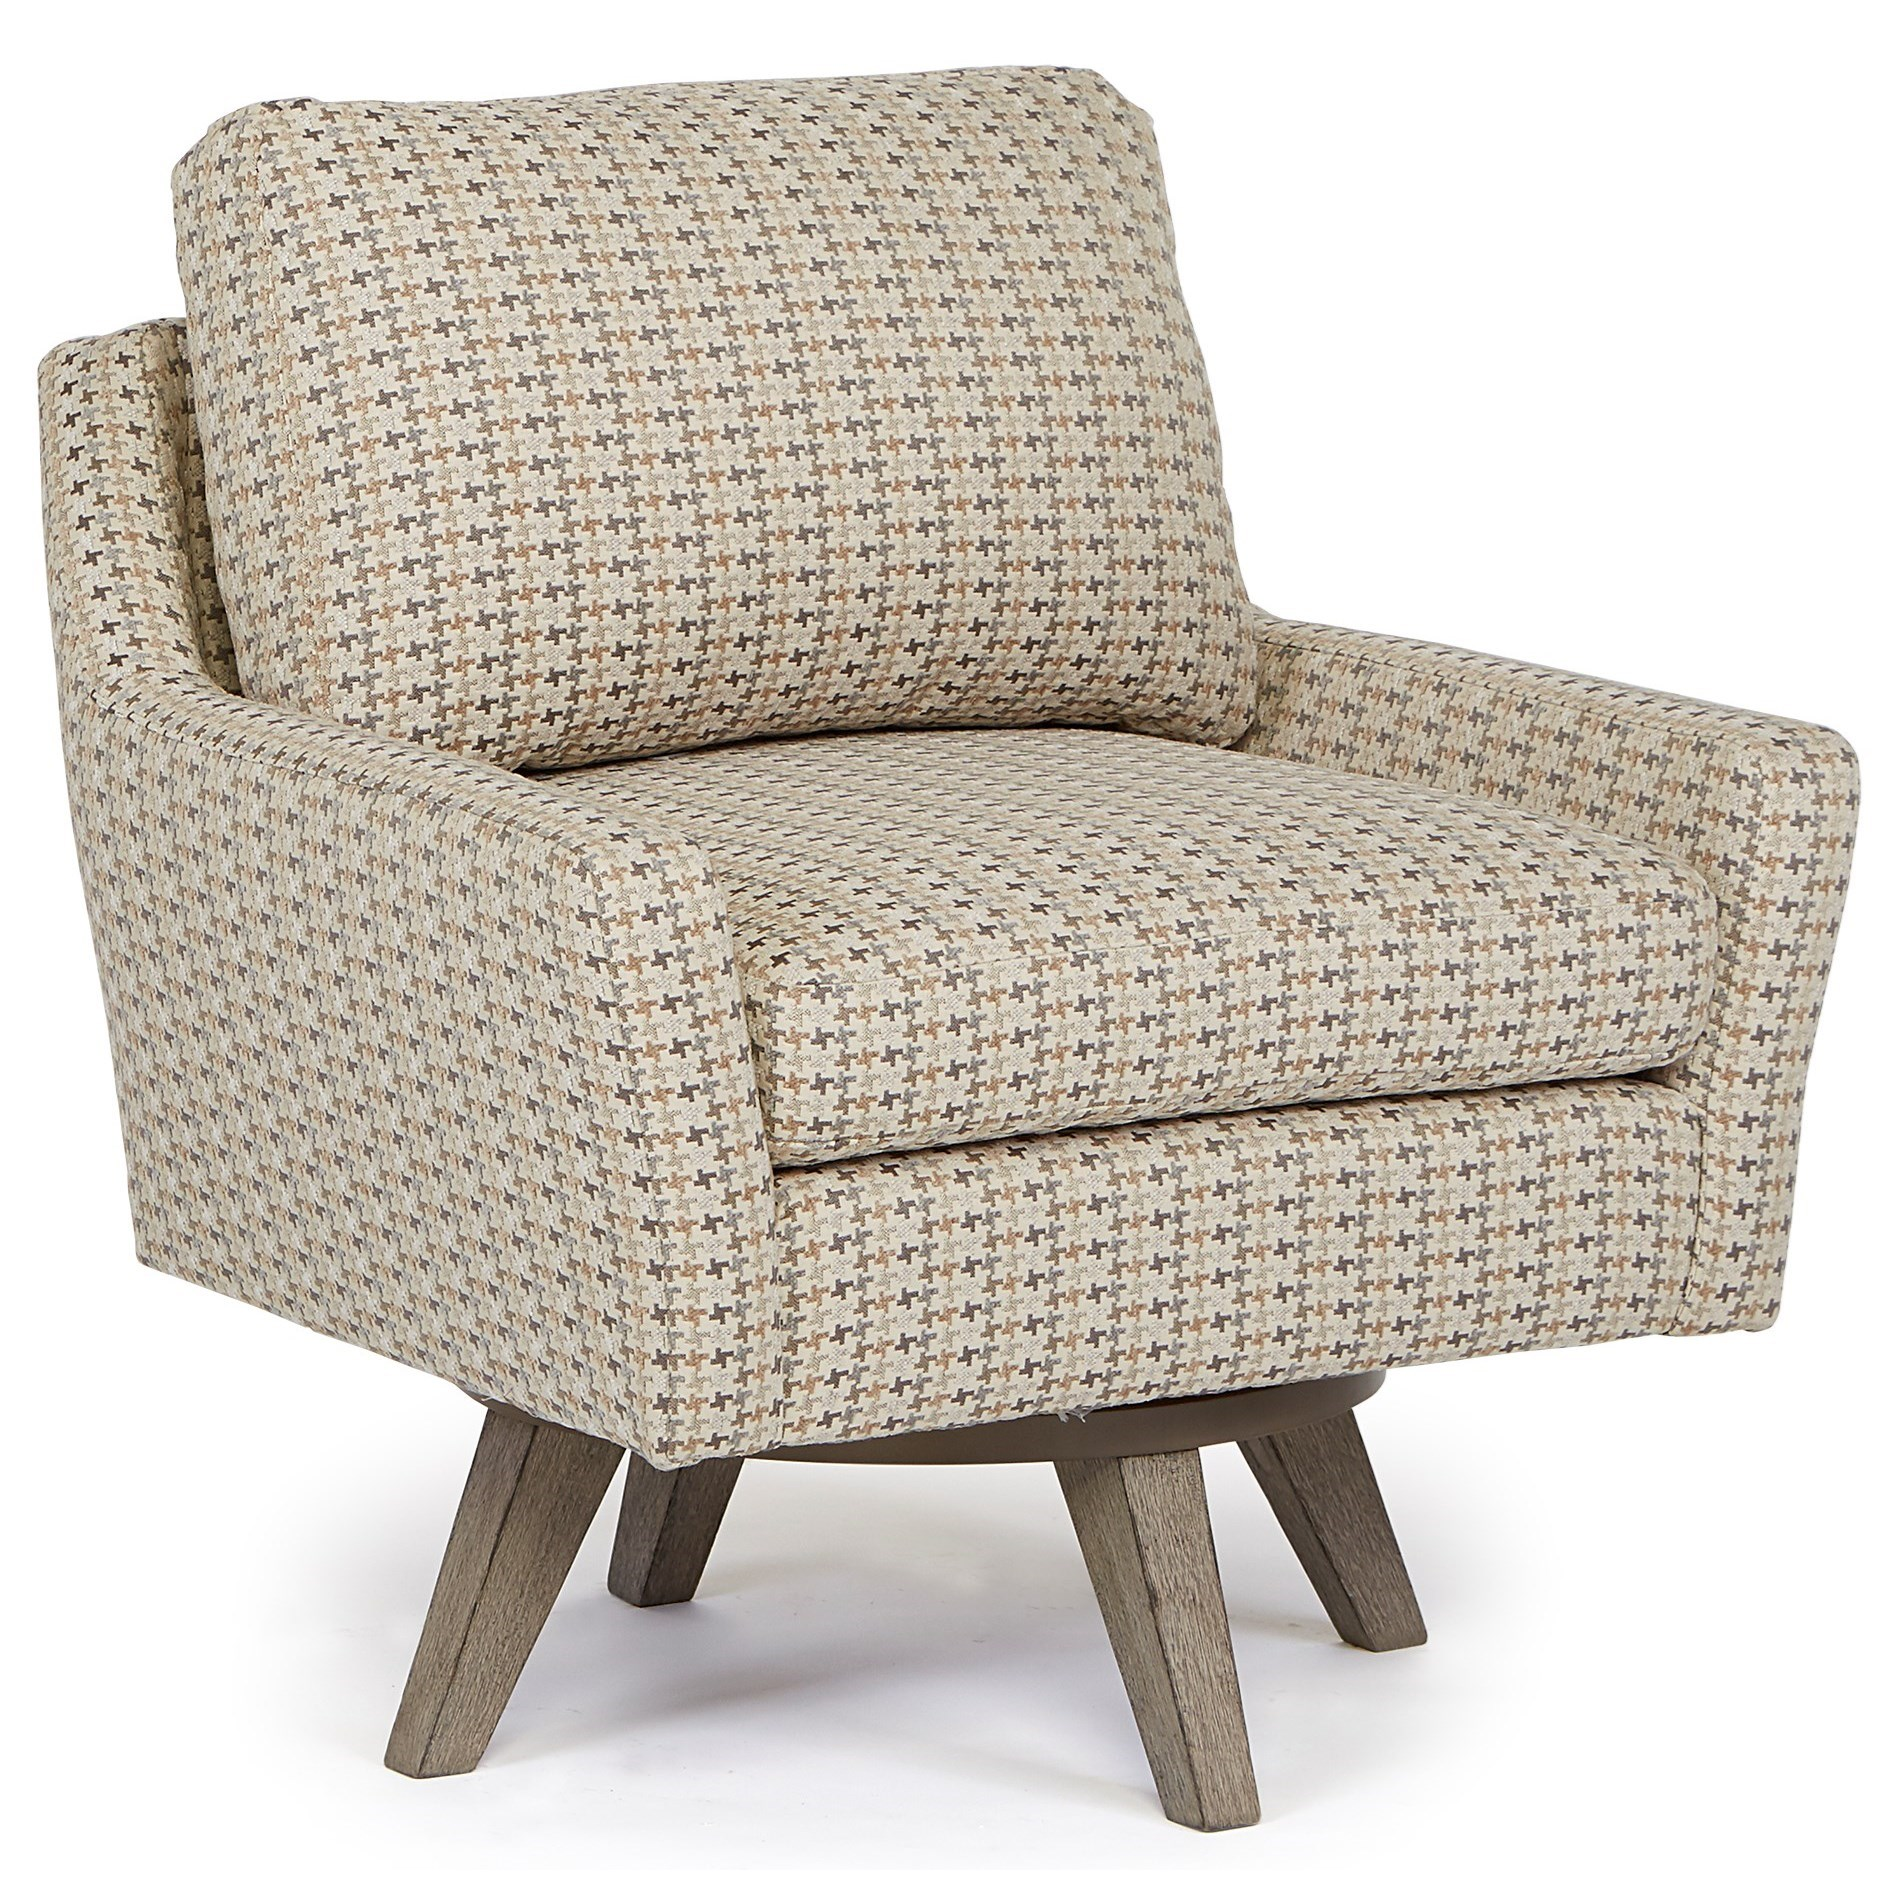 Chairs - Swivel Barrel Seymour Swivel Chair by Best Home Furnishings at Lapeer Furniture & Mattress Center